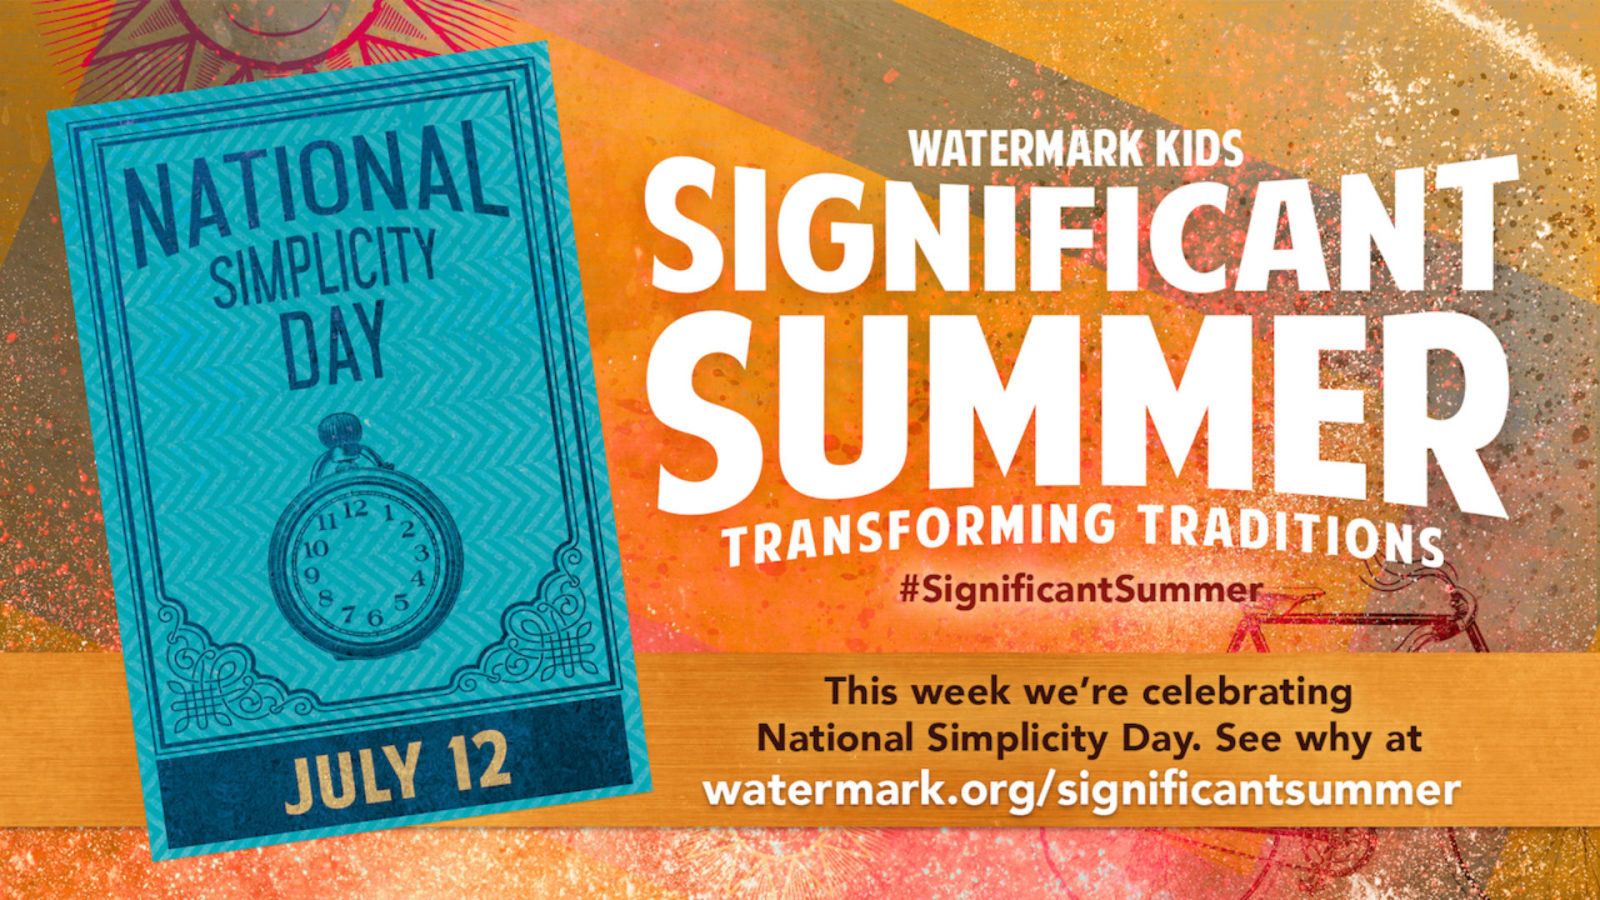 Significant Summer Week 6: National Simplicity Day Hero Image